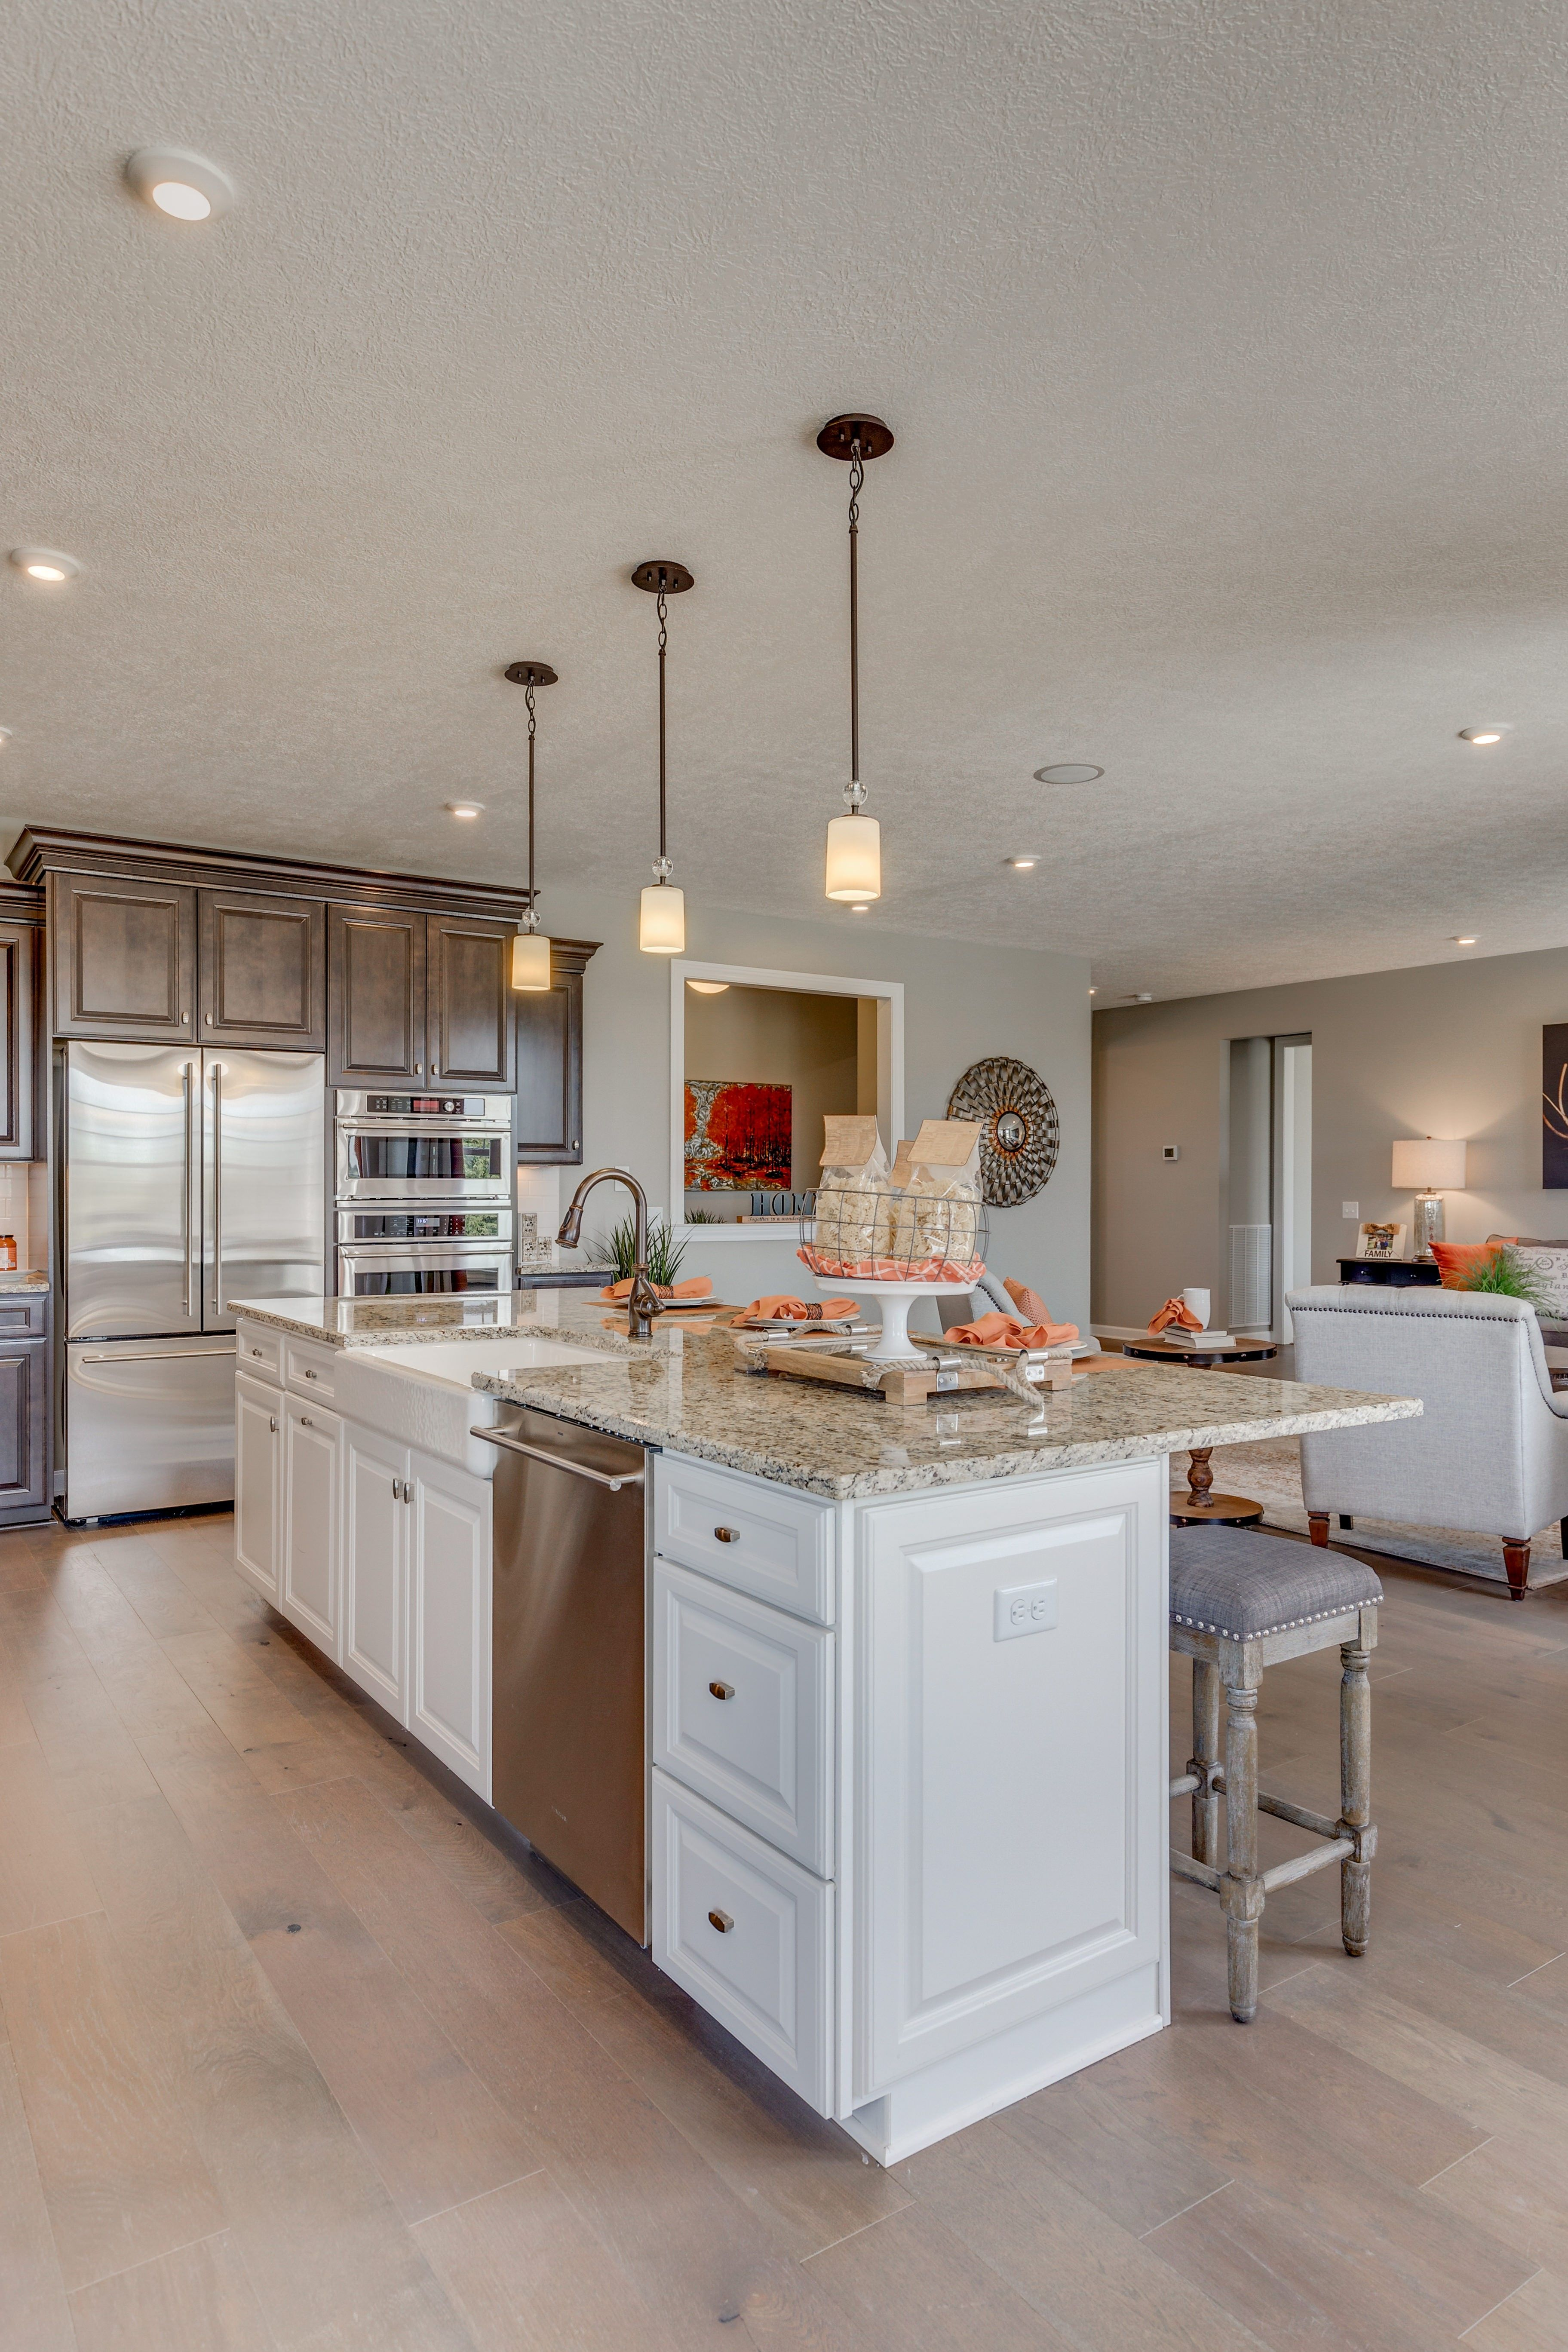 Kitchen featured in the Faulkner By K. Hovnanian® Homes - Build on Your Lot in Toledo, OH